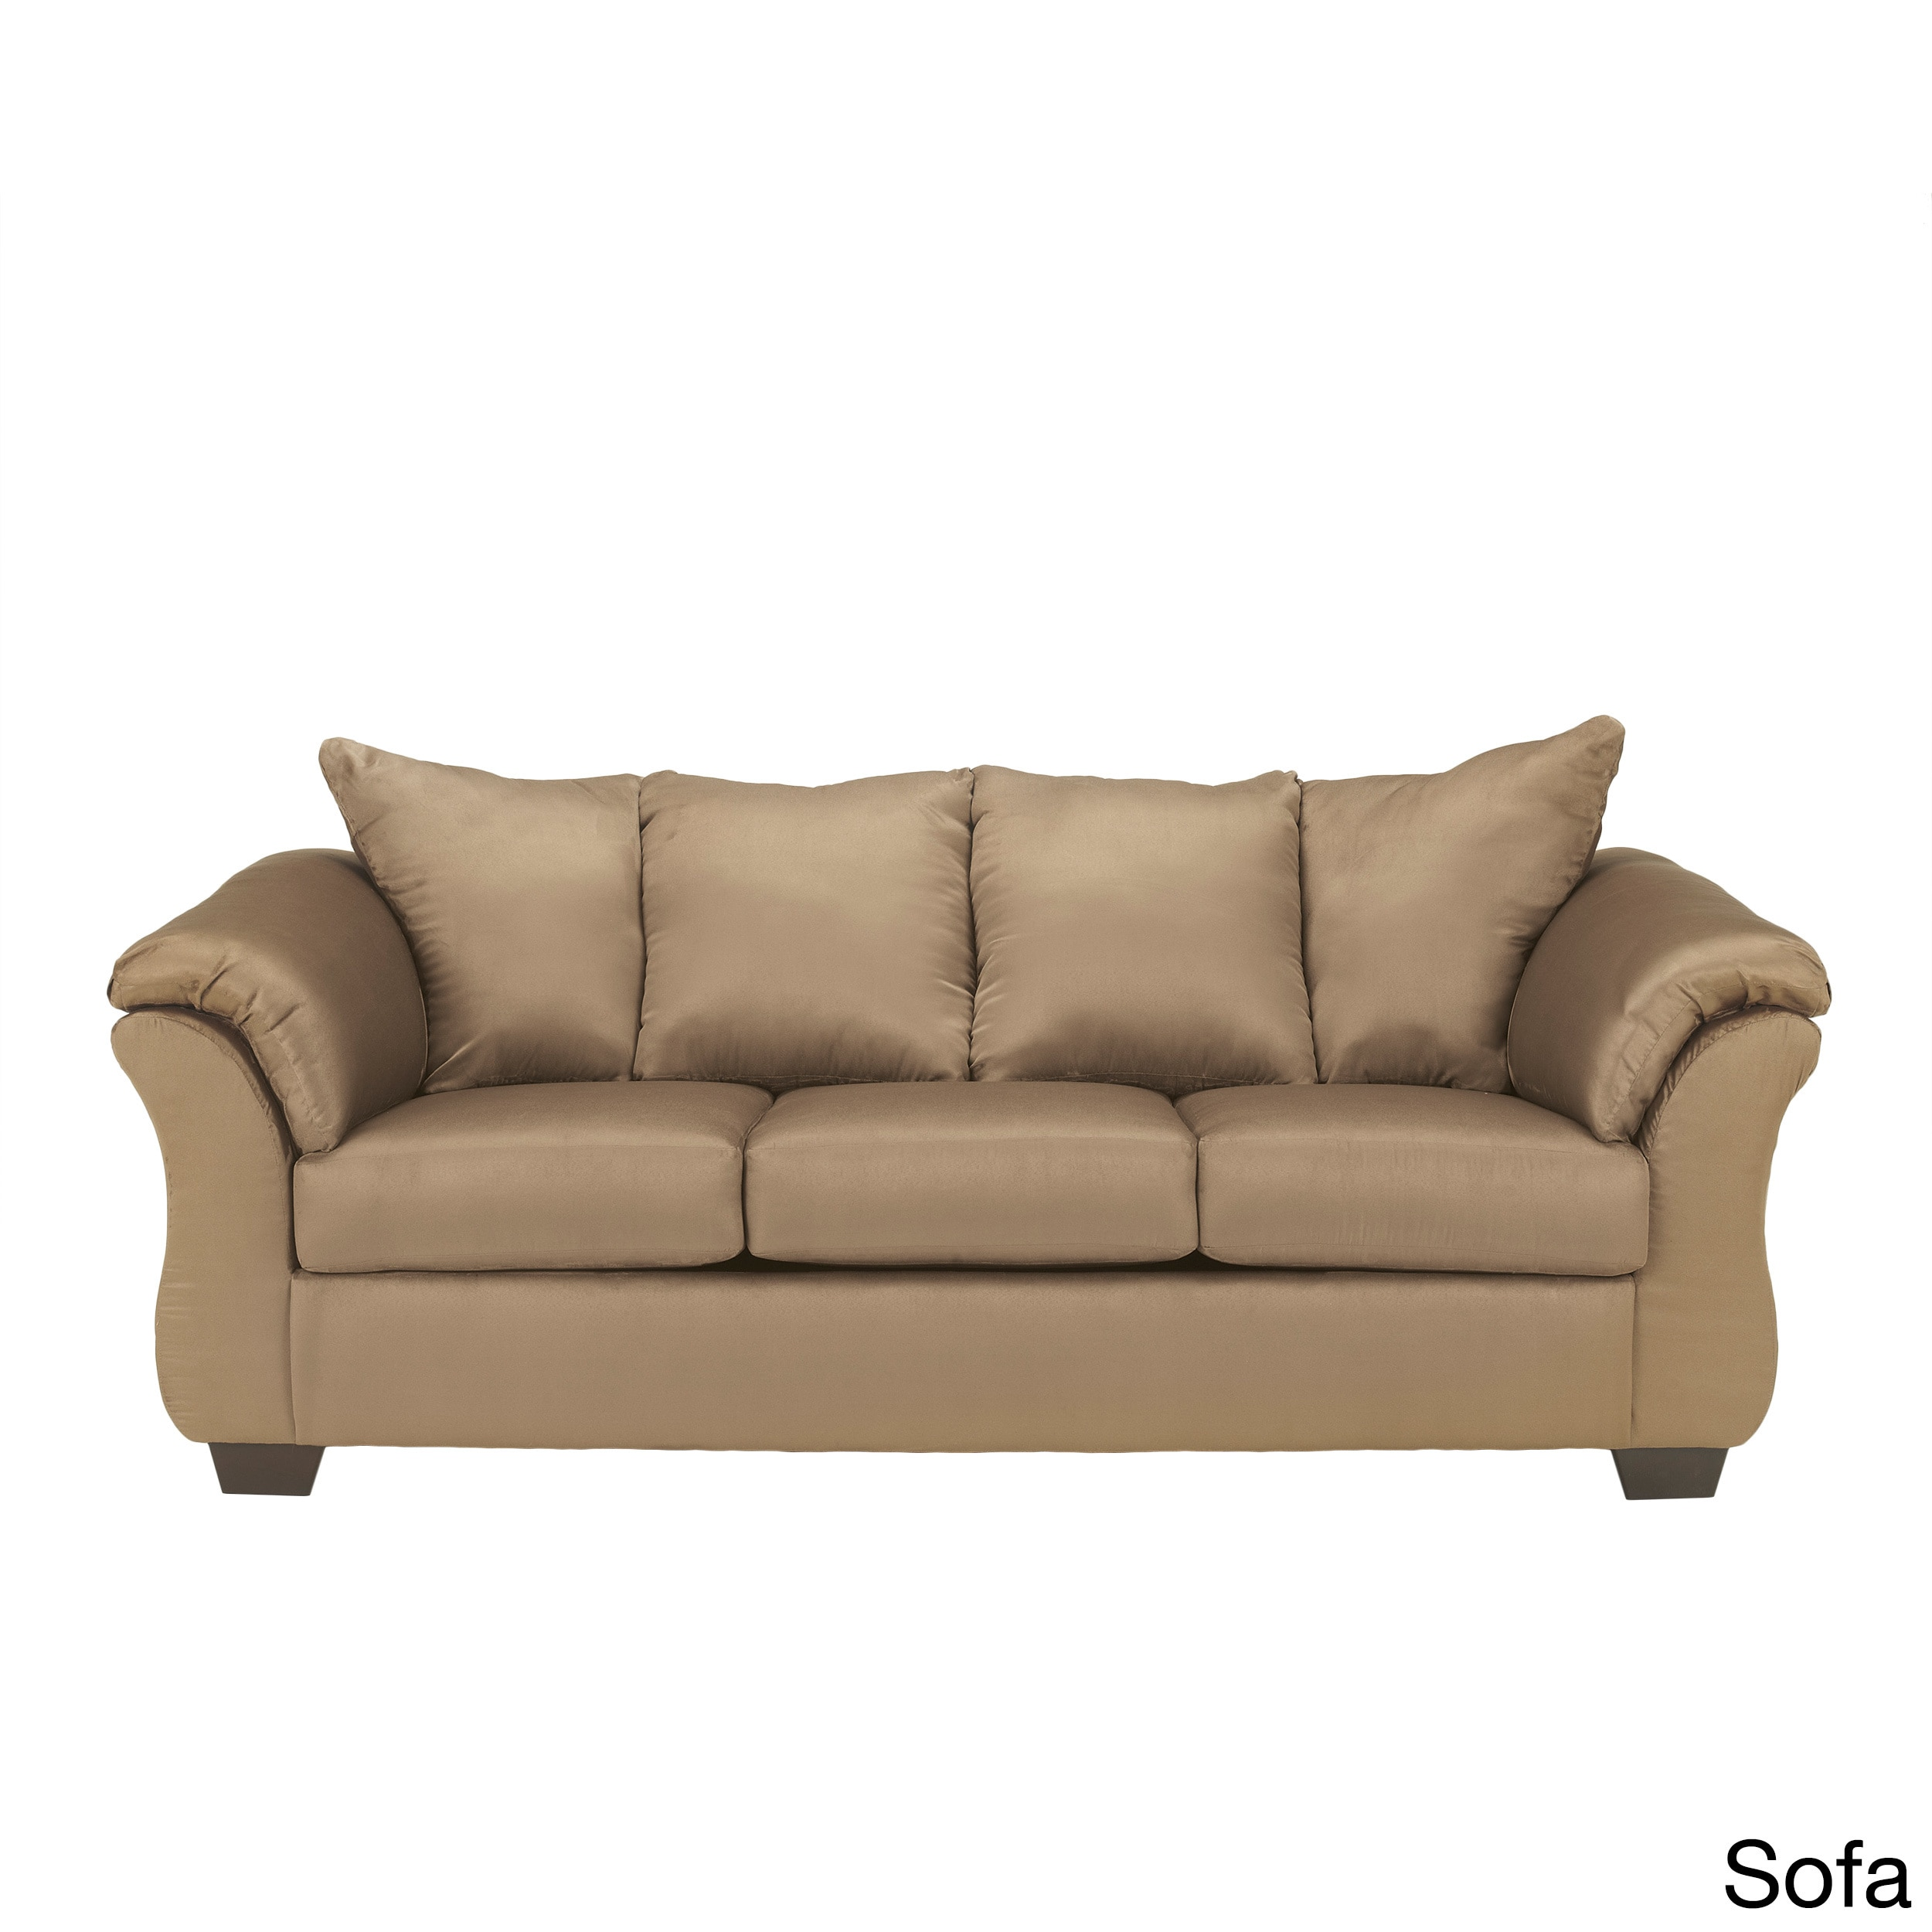 Signature Designs By Ashley 39 Darcy 39 Mocha Brown Sofa Overstock Shopping Great Deals On